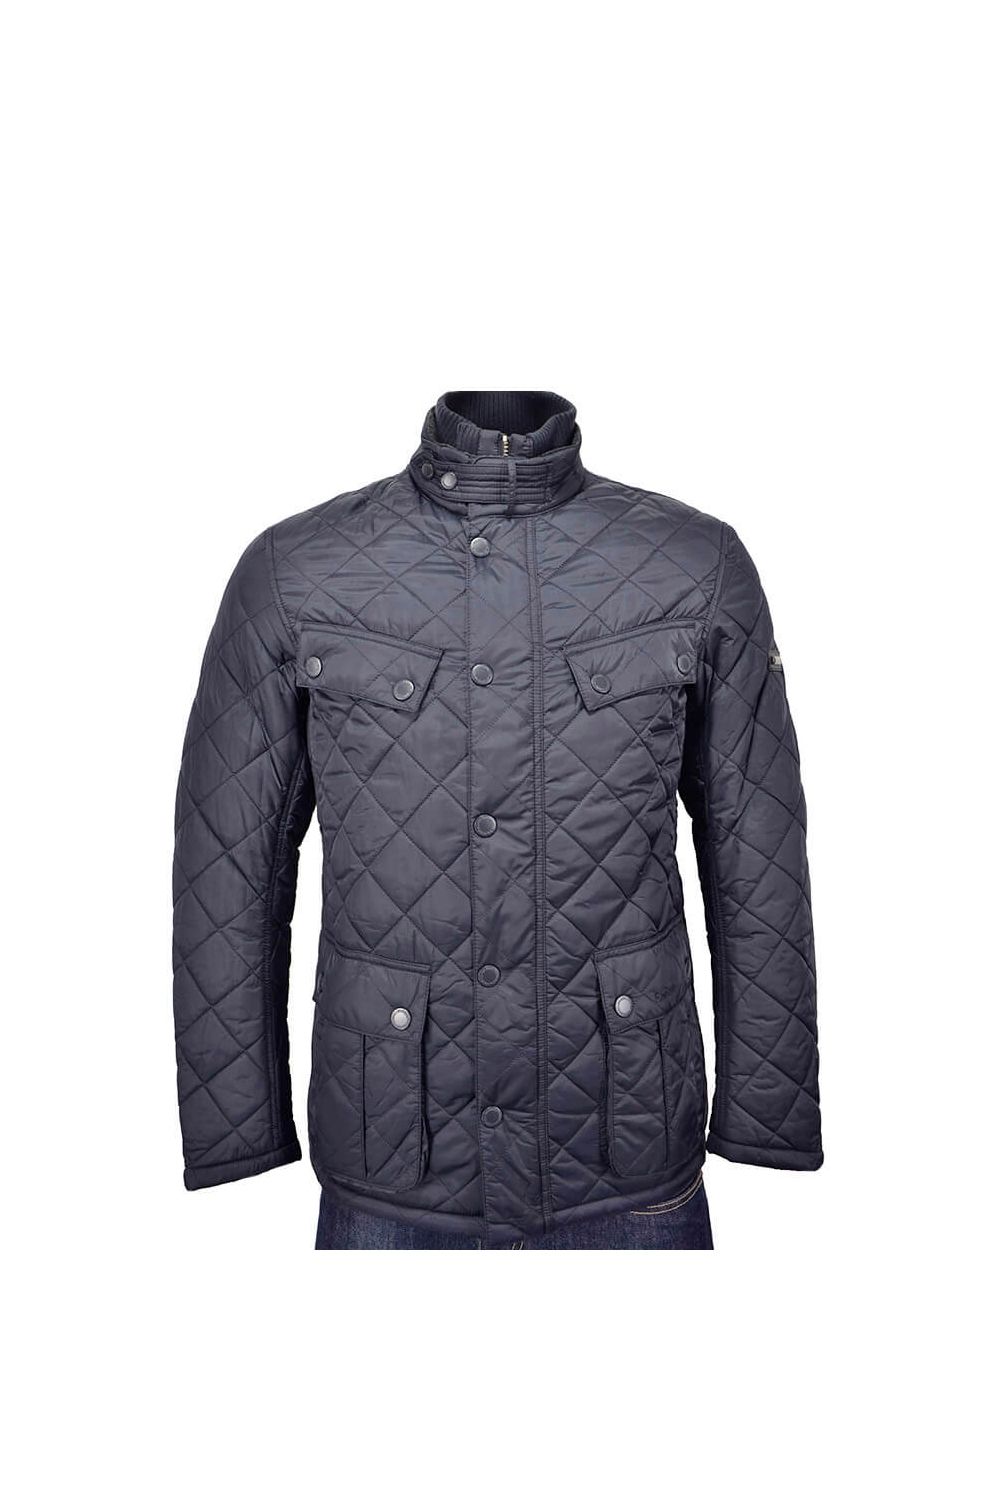 Barbour International Windshield Quilted Jacket Navy